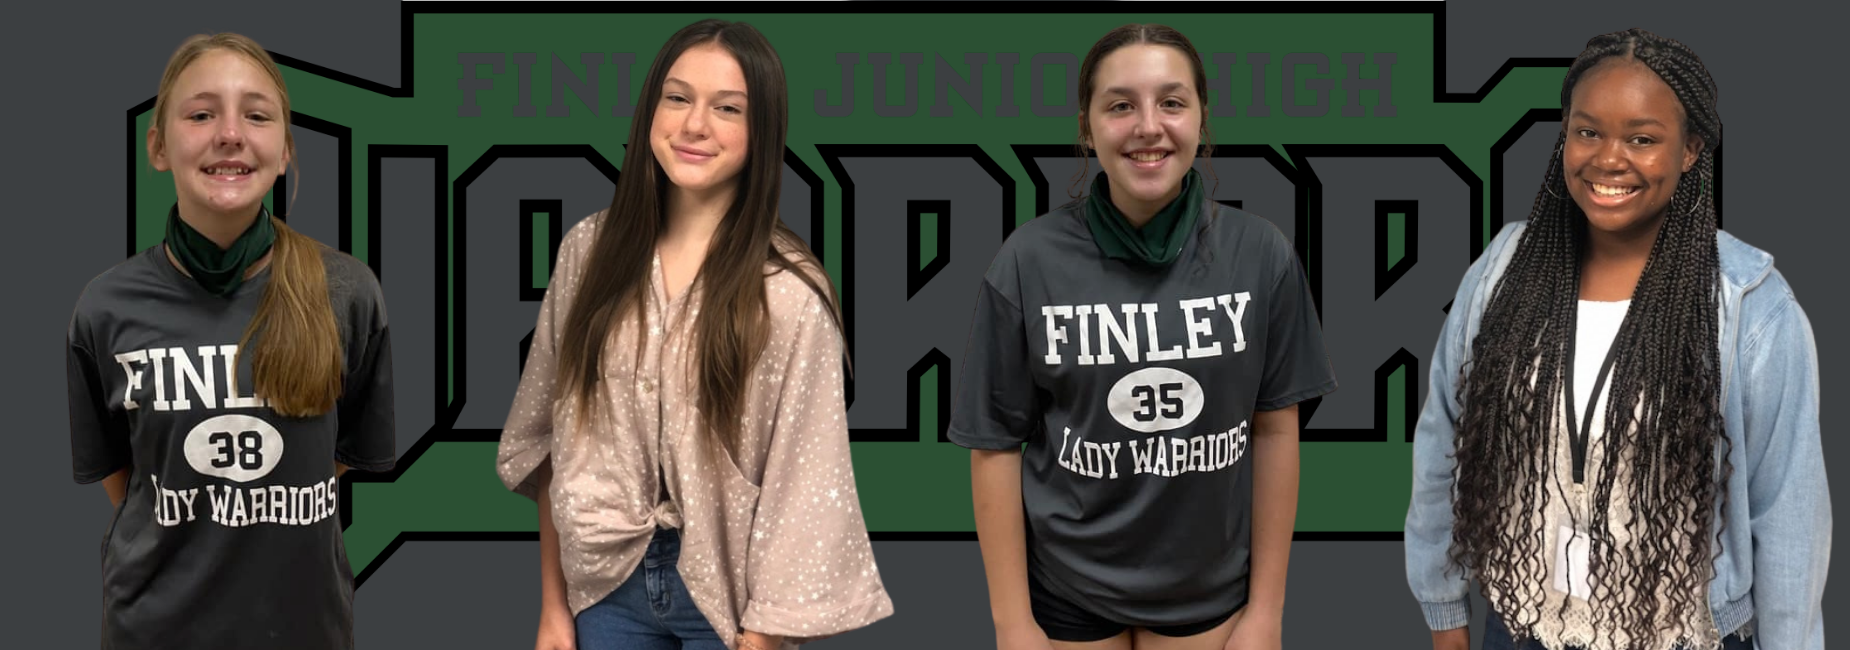 4 girls smiling 2 are in Finley jerseys in front of the Finley Warriors logo